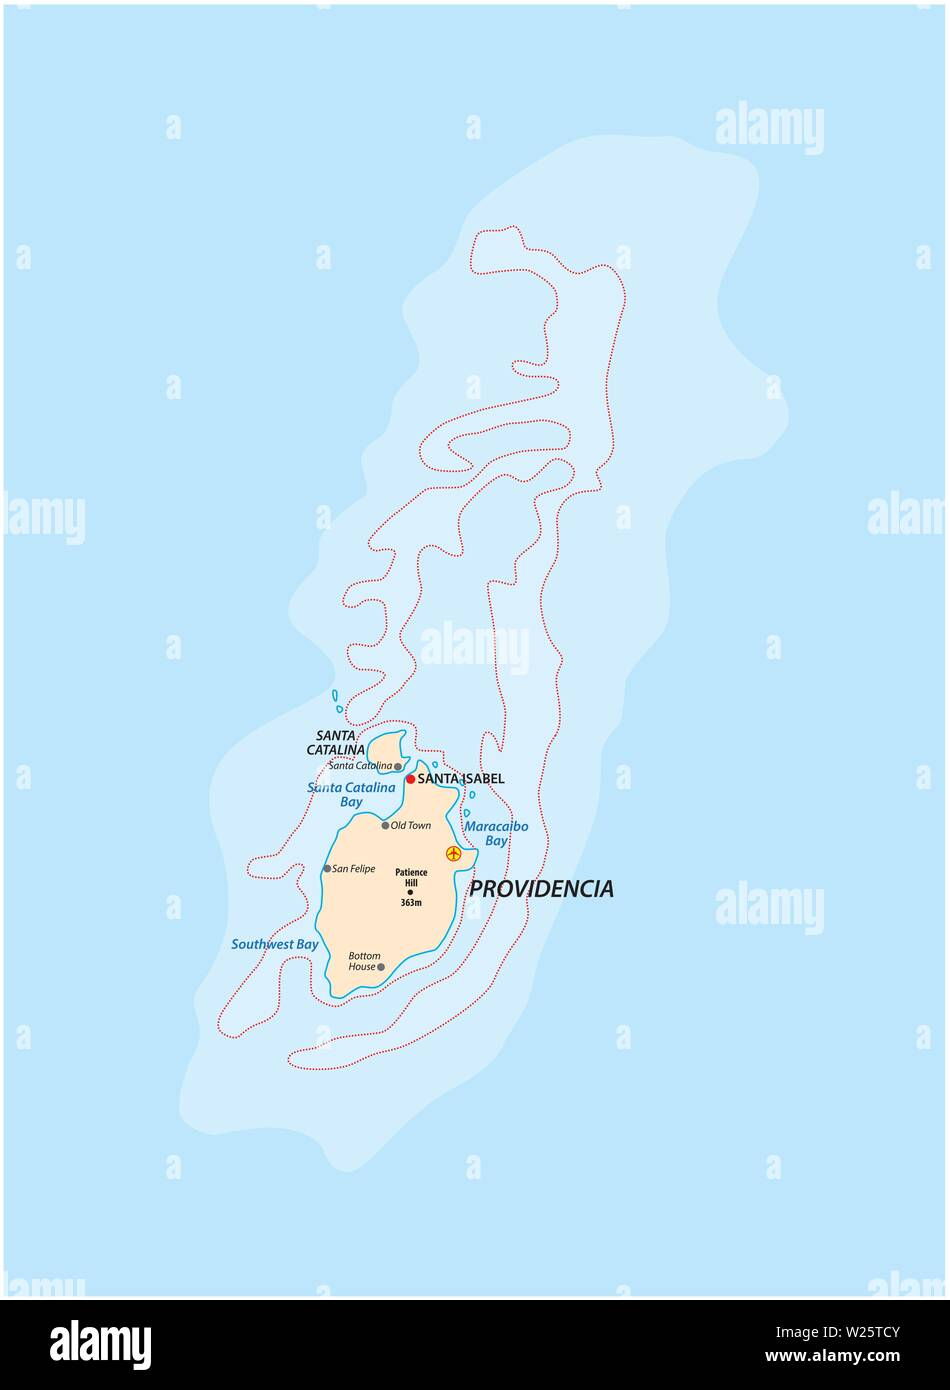 small outline map of the colombian caribbean islands Providencia and Santa Catalina - Stock Vector